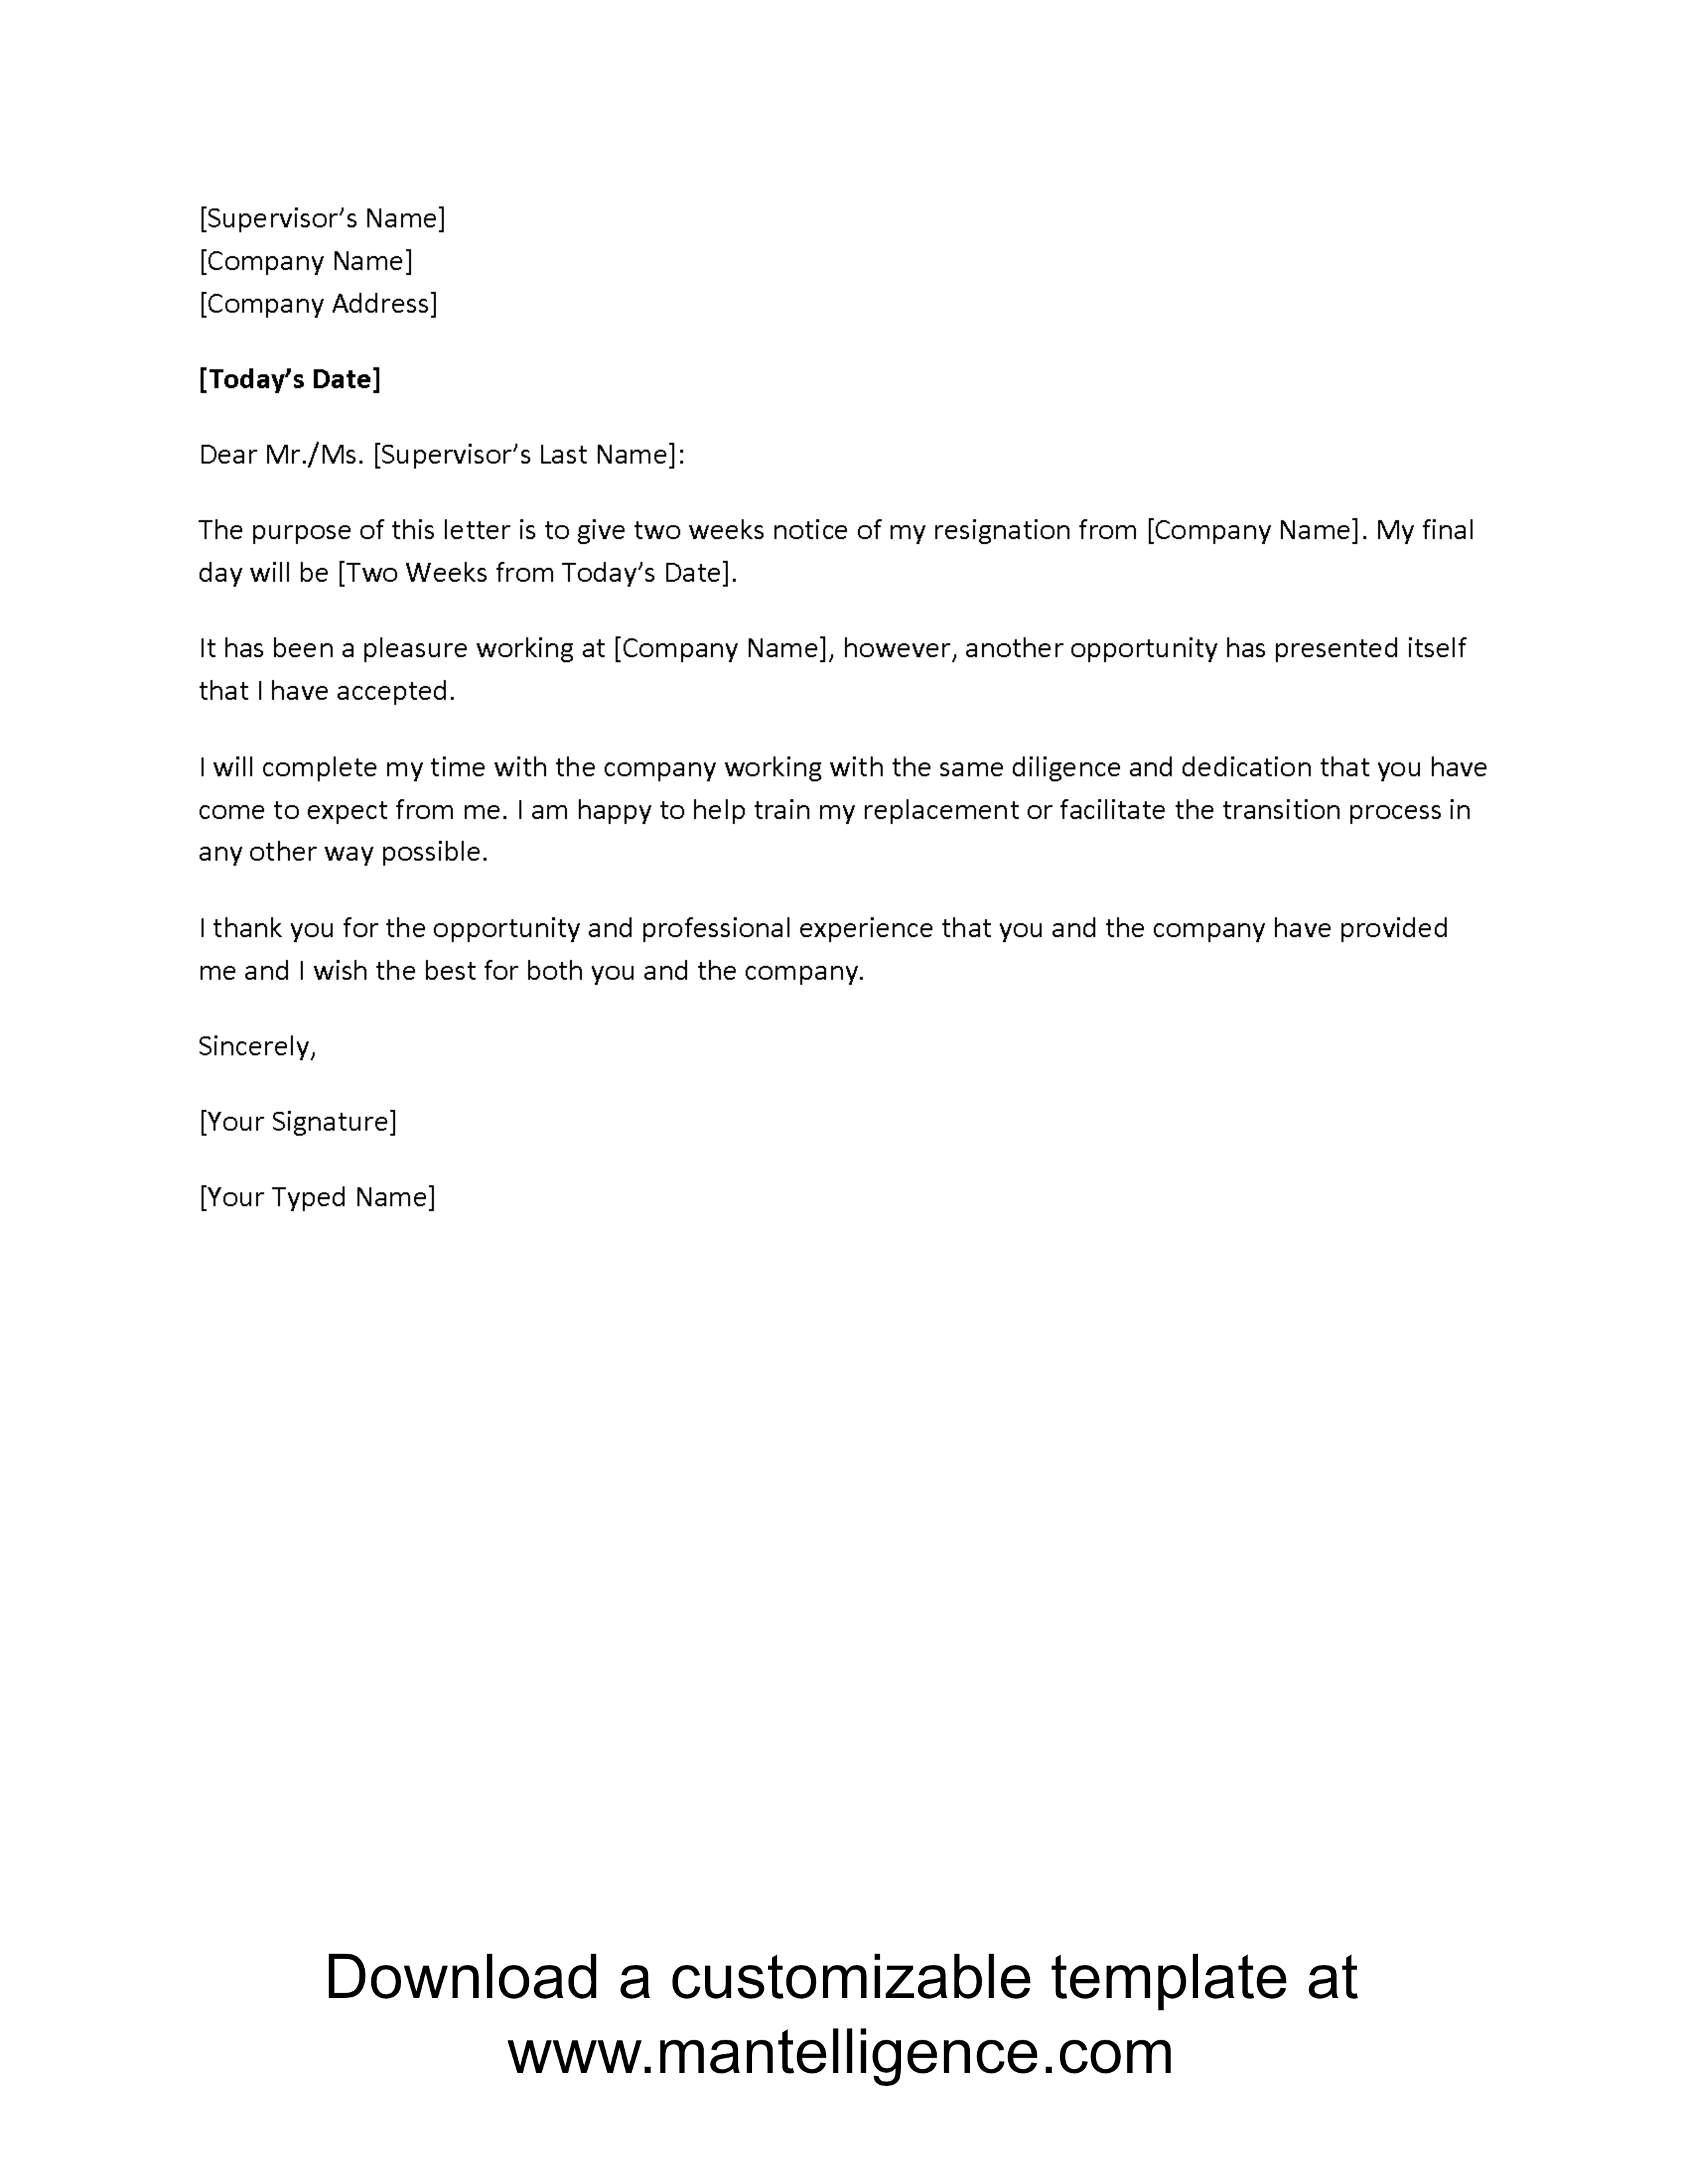 Final Notice before Legal Action Letter Template Uk - 3 Highly Professional Two Weeks Notice Letter Templates